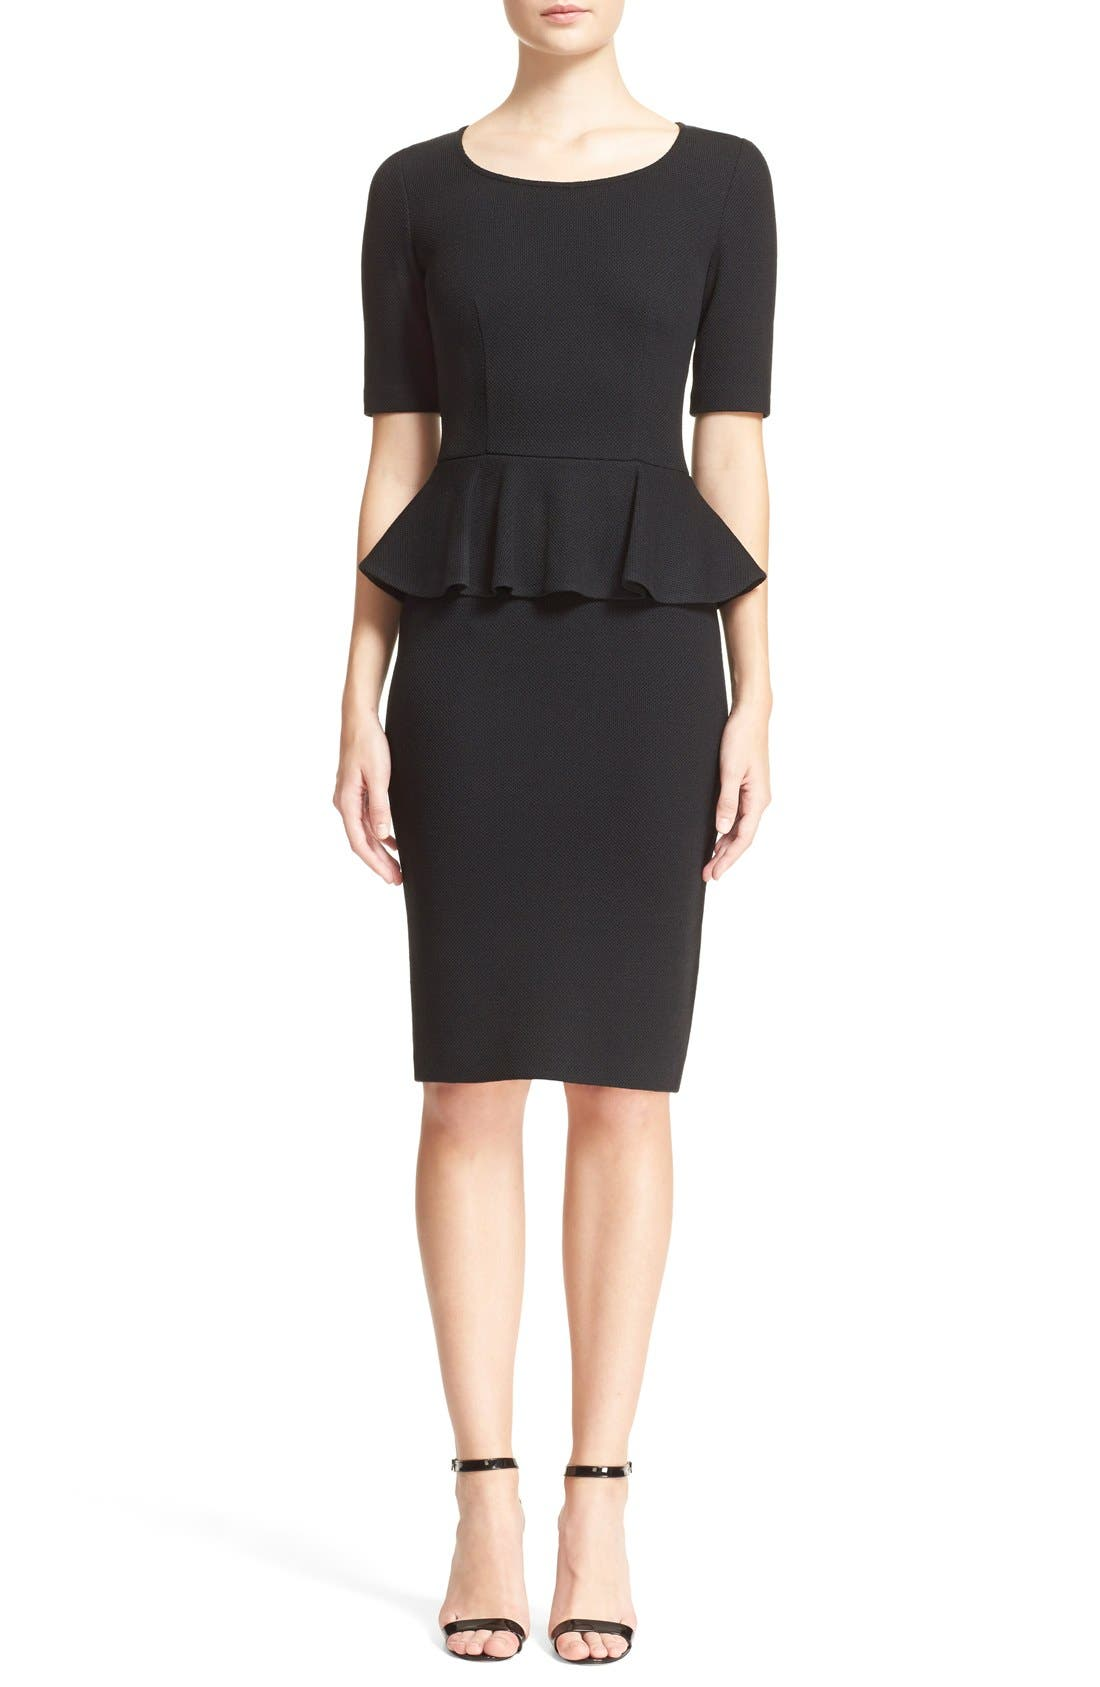 Alternate Image 1 Selected - St. John Collection Peplum Milano Piqué Knit Dress